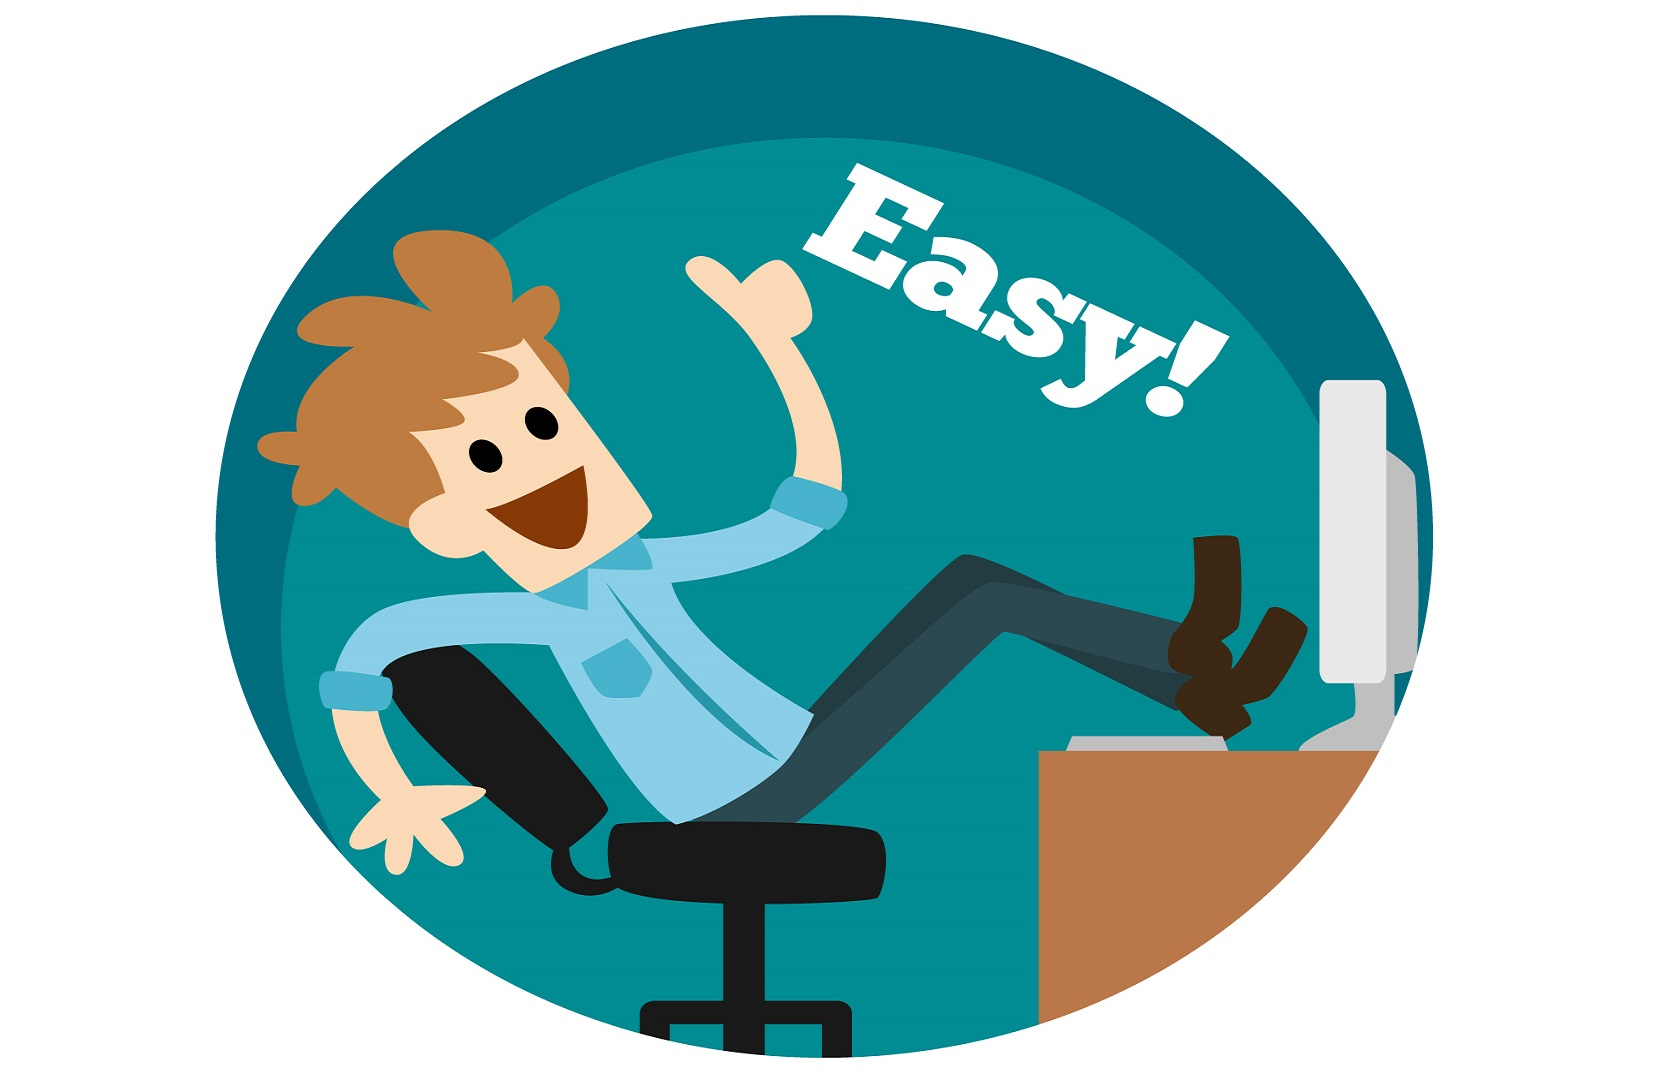 Ease of use: Hosted or self-hosted e-commerce platform